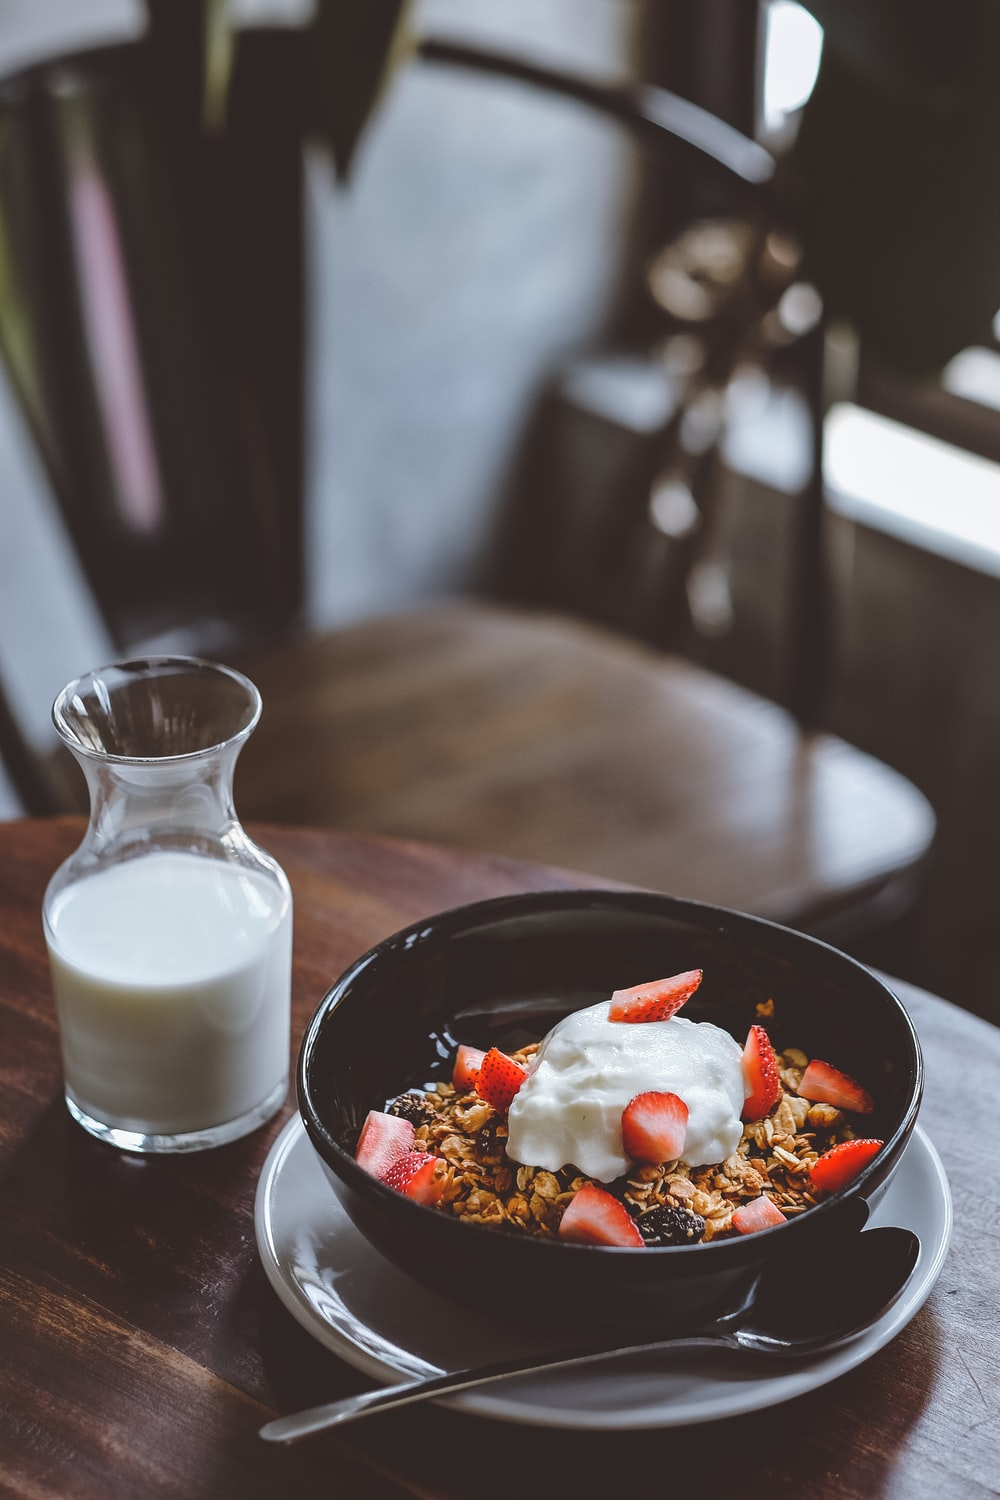 bowl of cereal with strawberries beside glass of milk on table